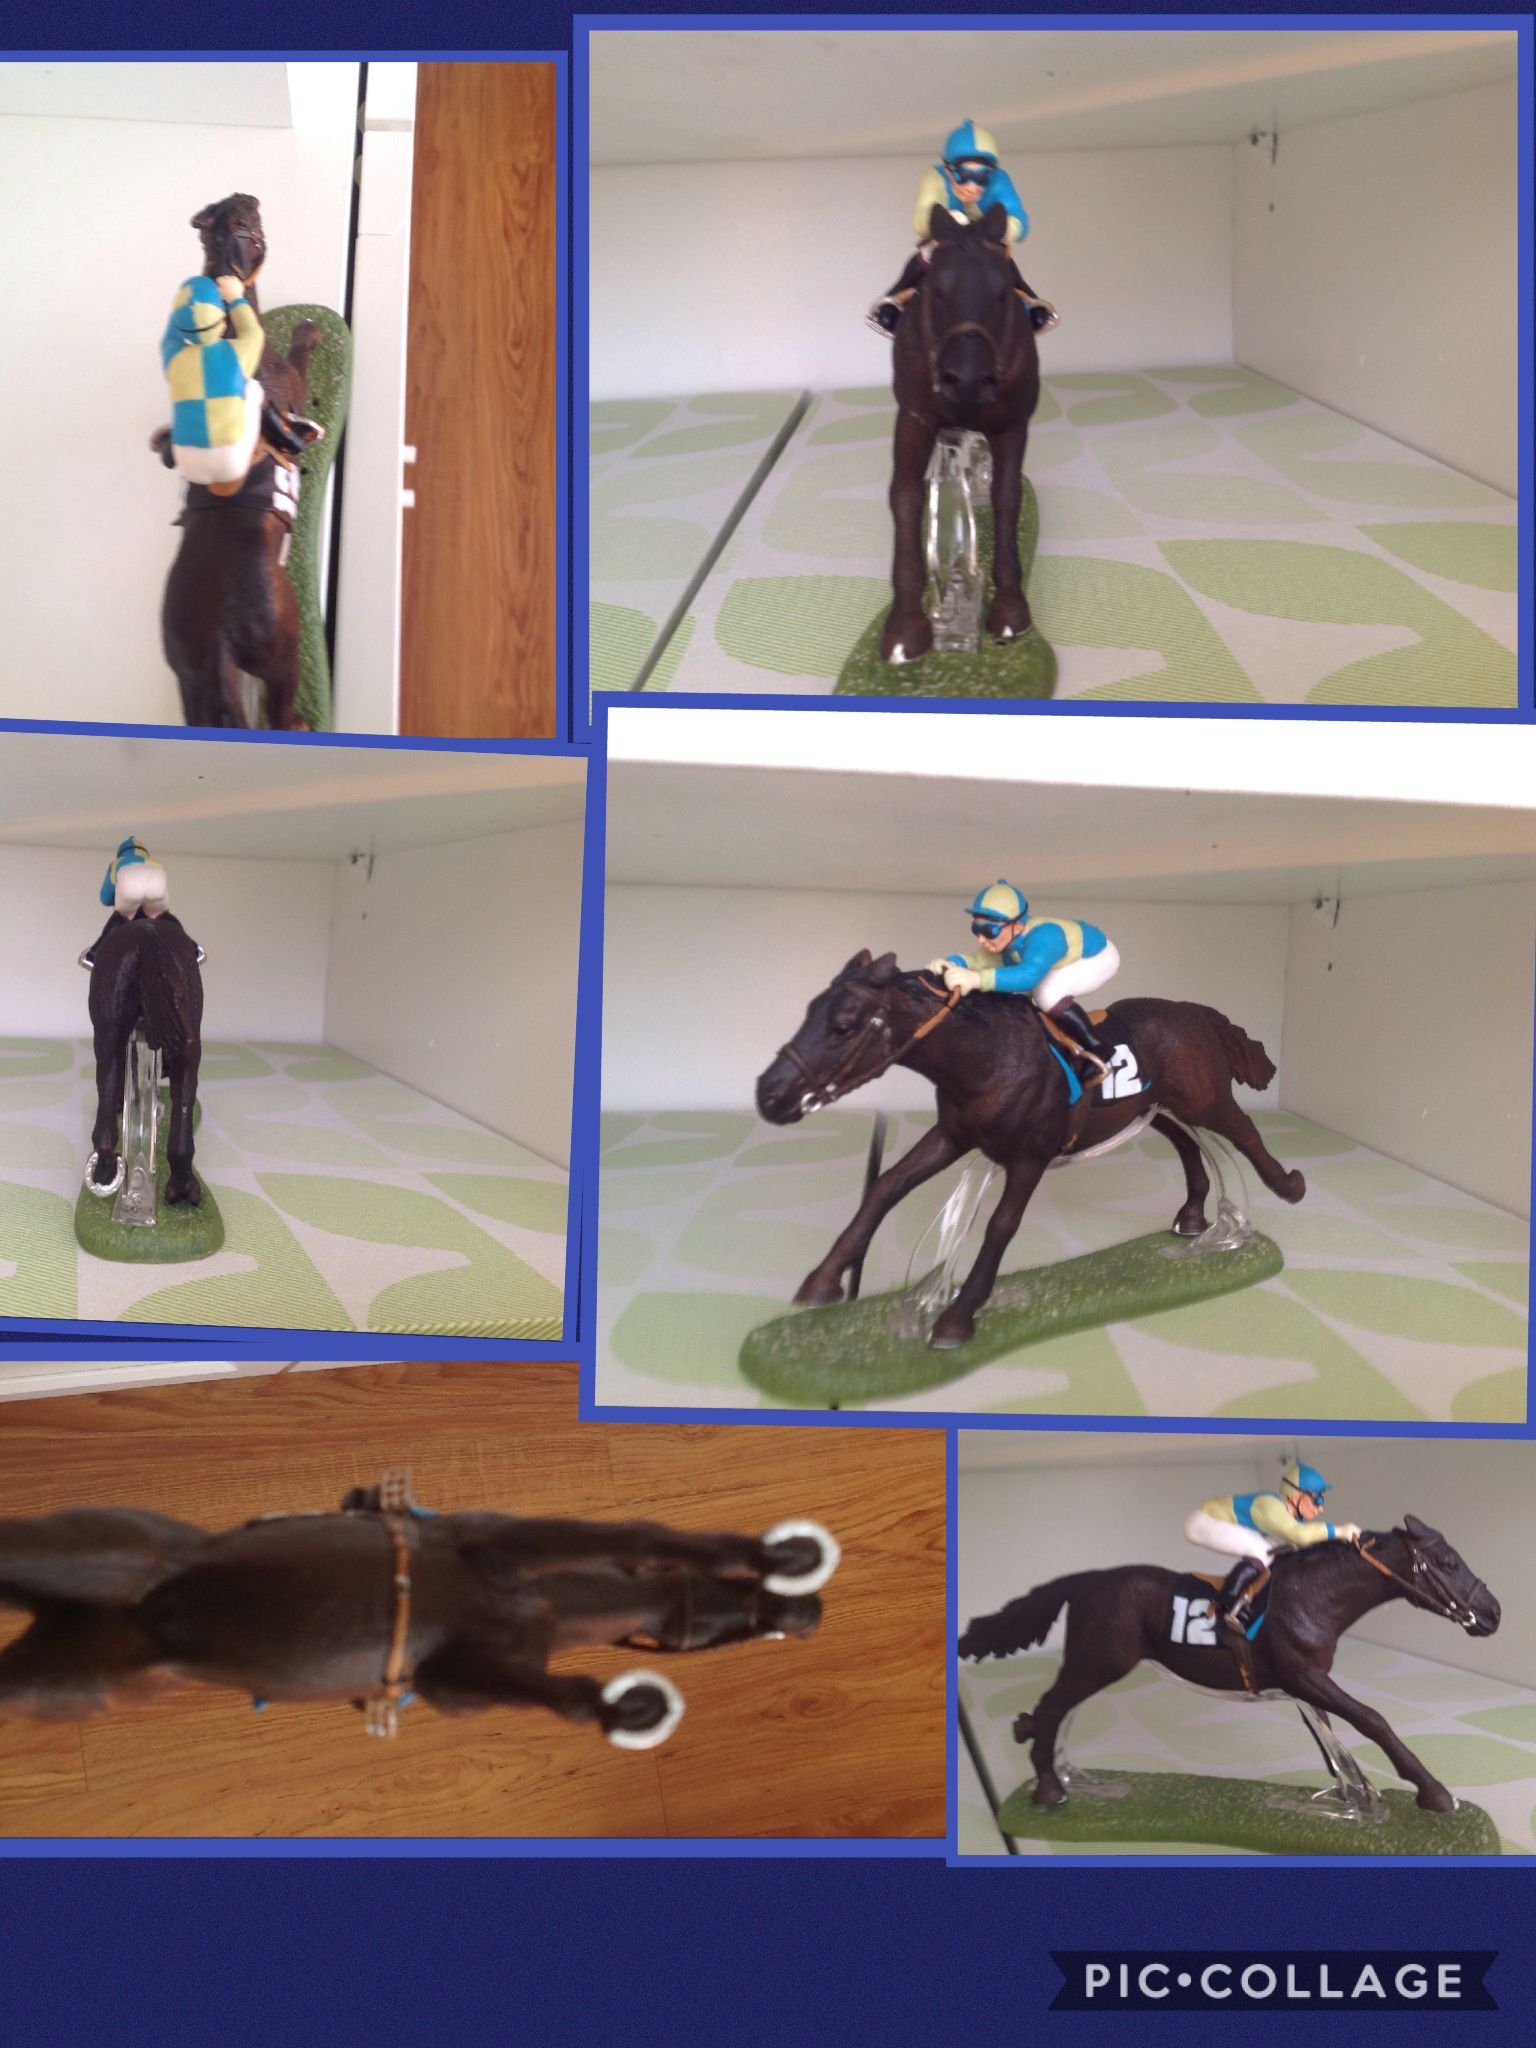 My new horse of Schleich! He's very old and difficult to find. I love him! He looks like the father of Pharoah Pioneer of the Nile XD